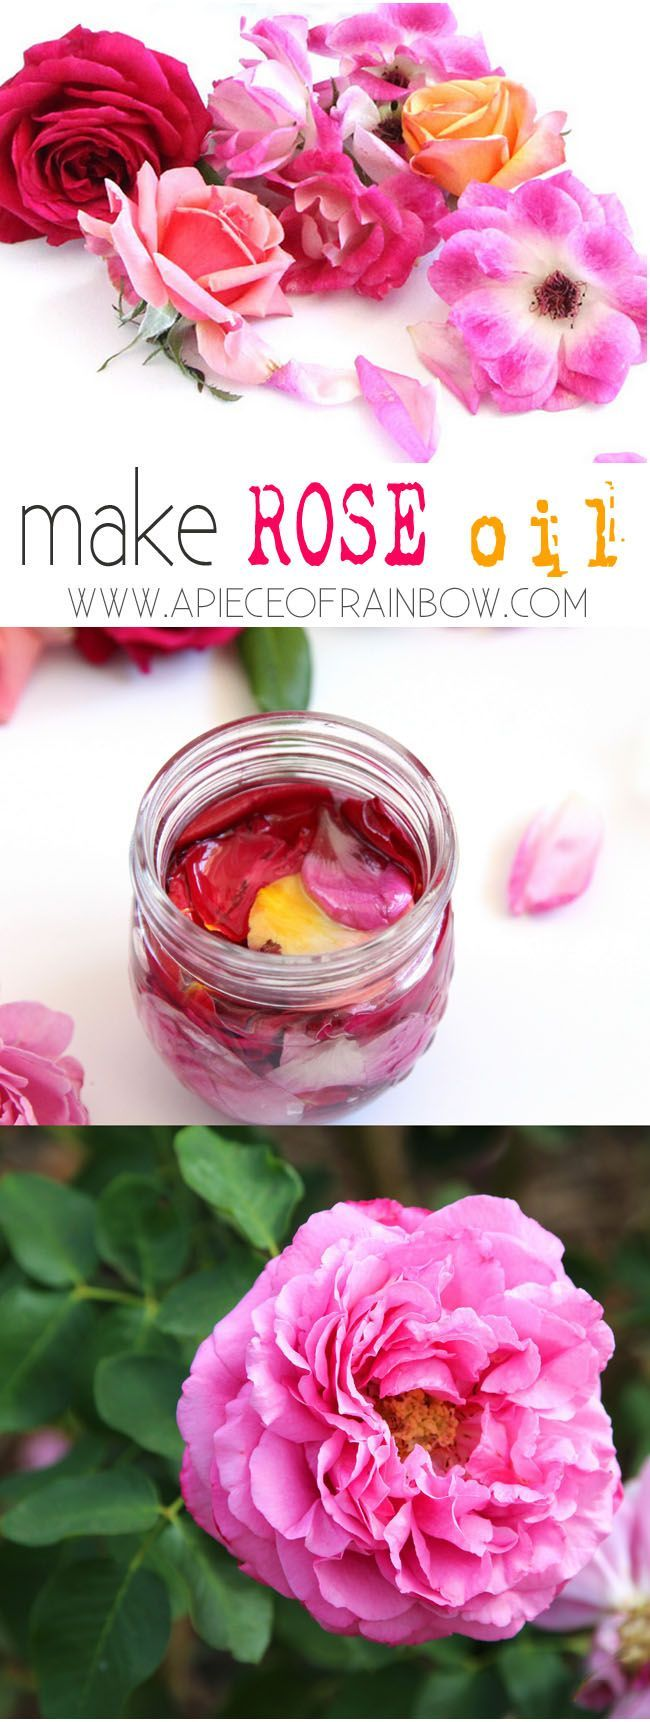 How to make rose oil from fresh roses in a yogurt maker! It's so easy, requires almost no work, and the rose oil smells heavenly! - A Piece Of Rainbow